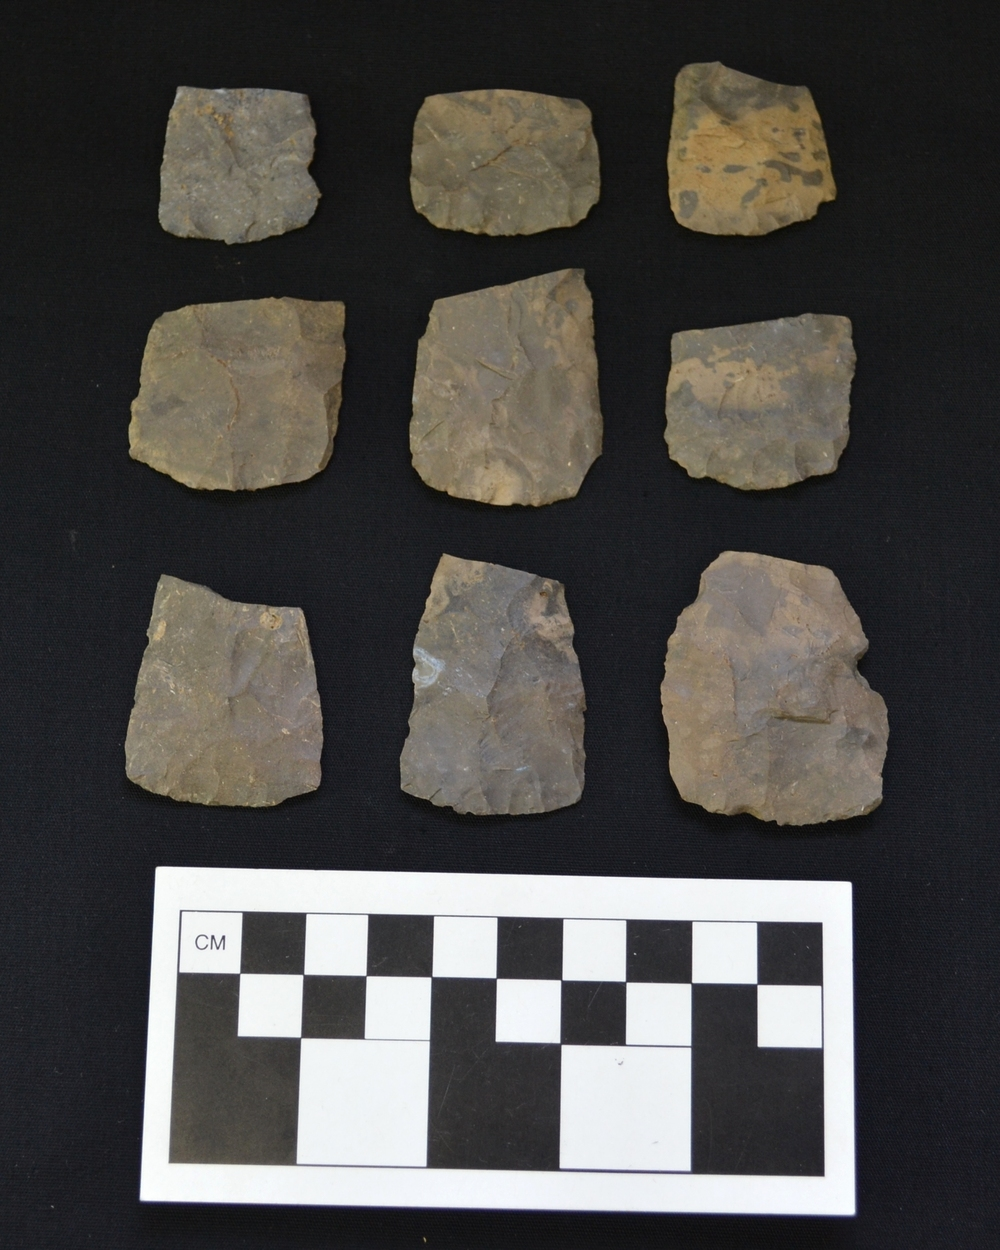 A sample of Onondaga chert,Meadowood cache blade fragments from the Esmond 2 site.